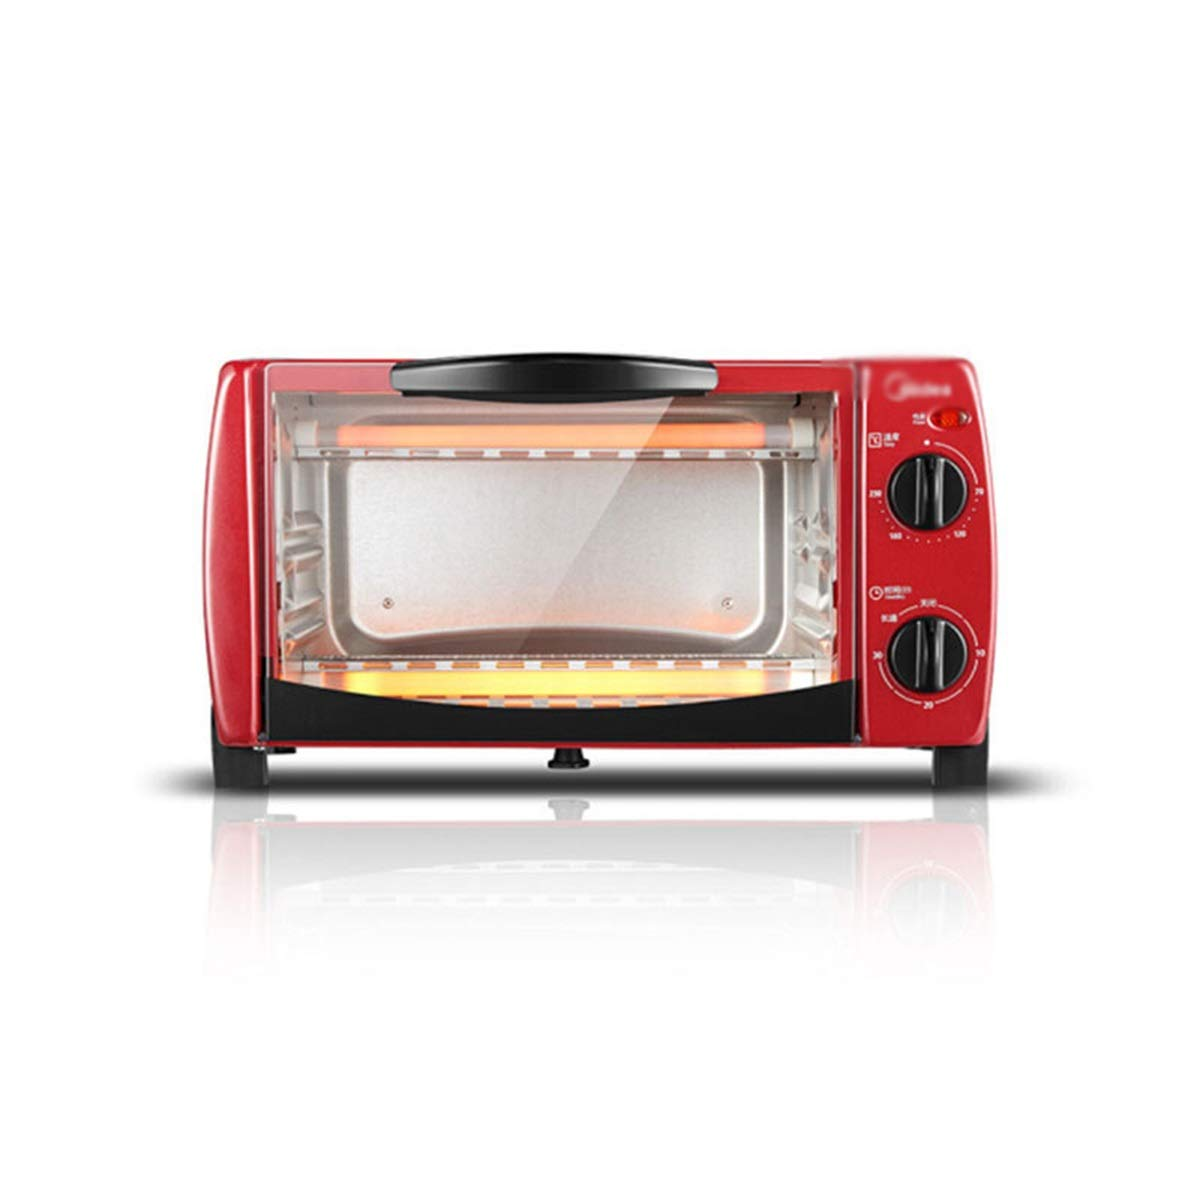 ZCYX Oven Mini Multi-function Double Bake Place Up And Down Independent Heating Oven - toastation